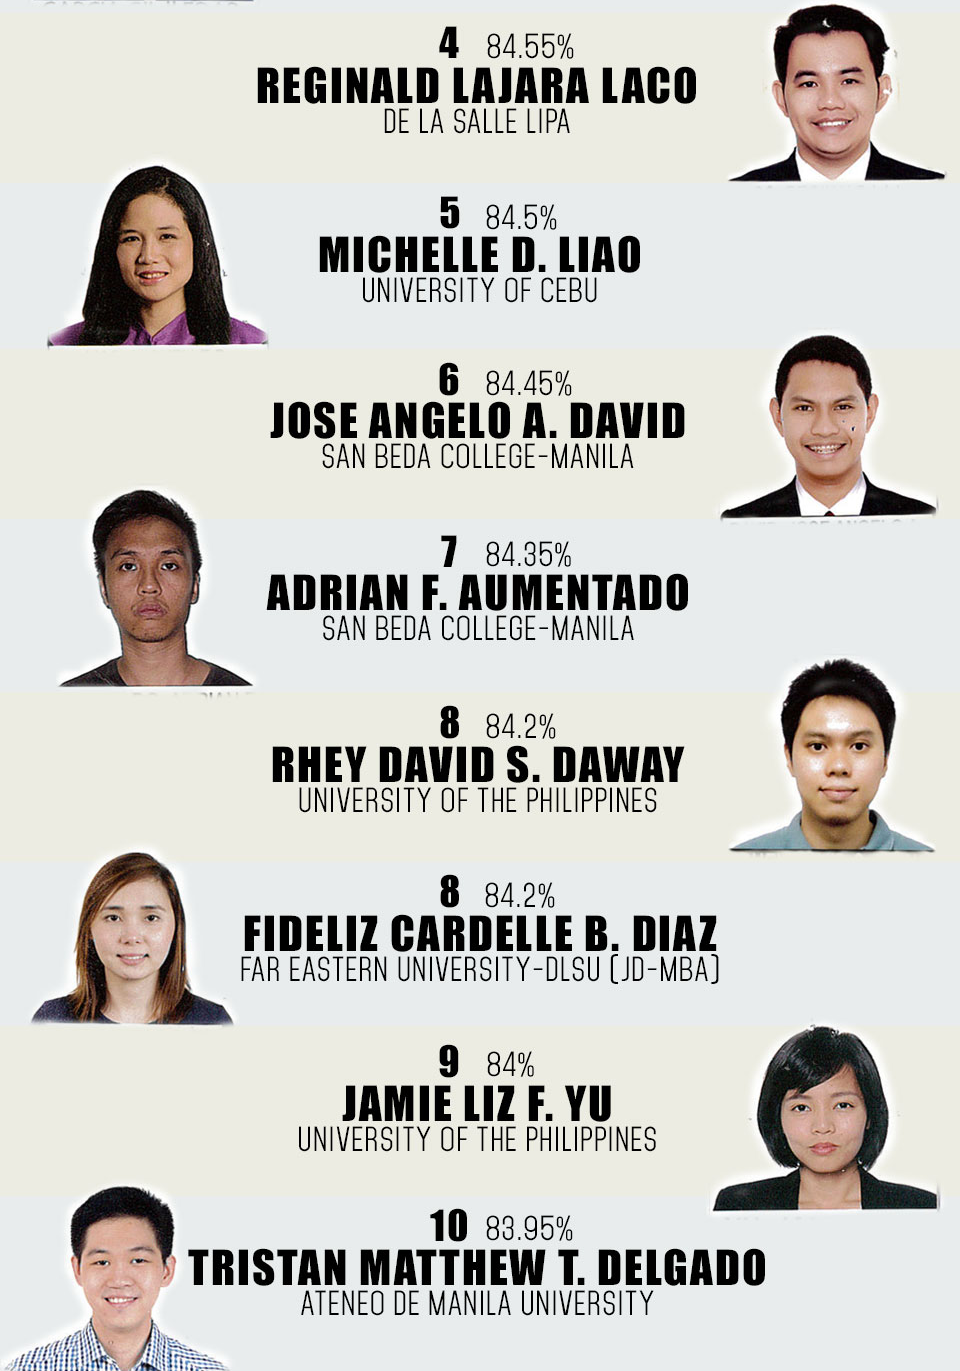 2014 bar exam top 10 with picture 03-26-2015-01